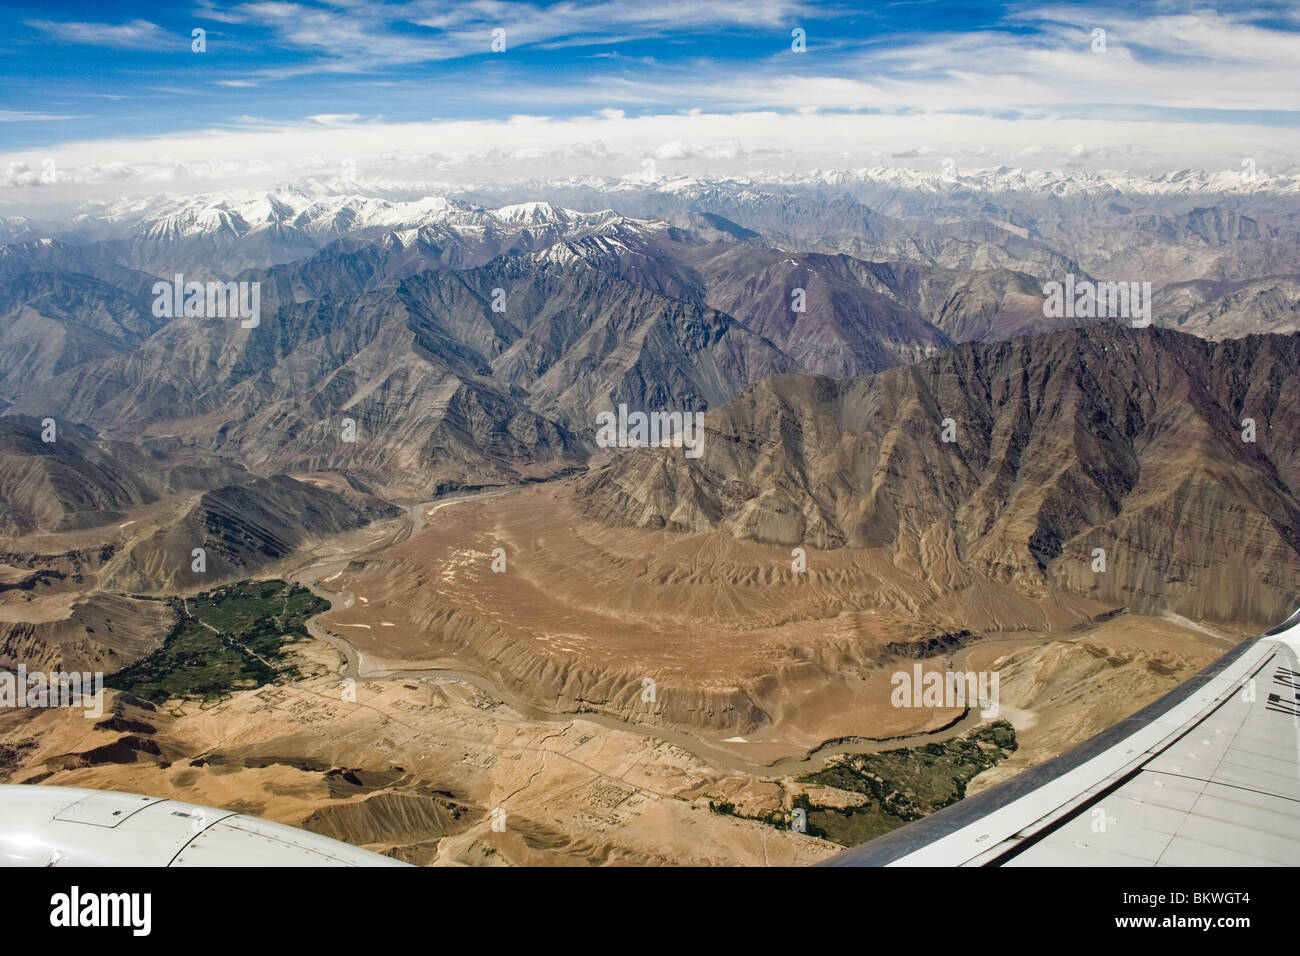 Aerial view of Himalaya - Stock Image